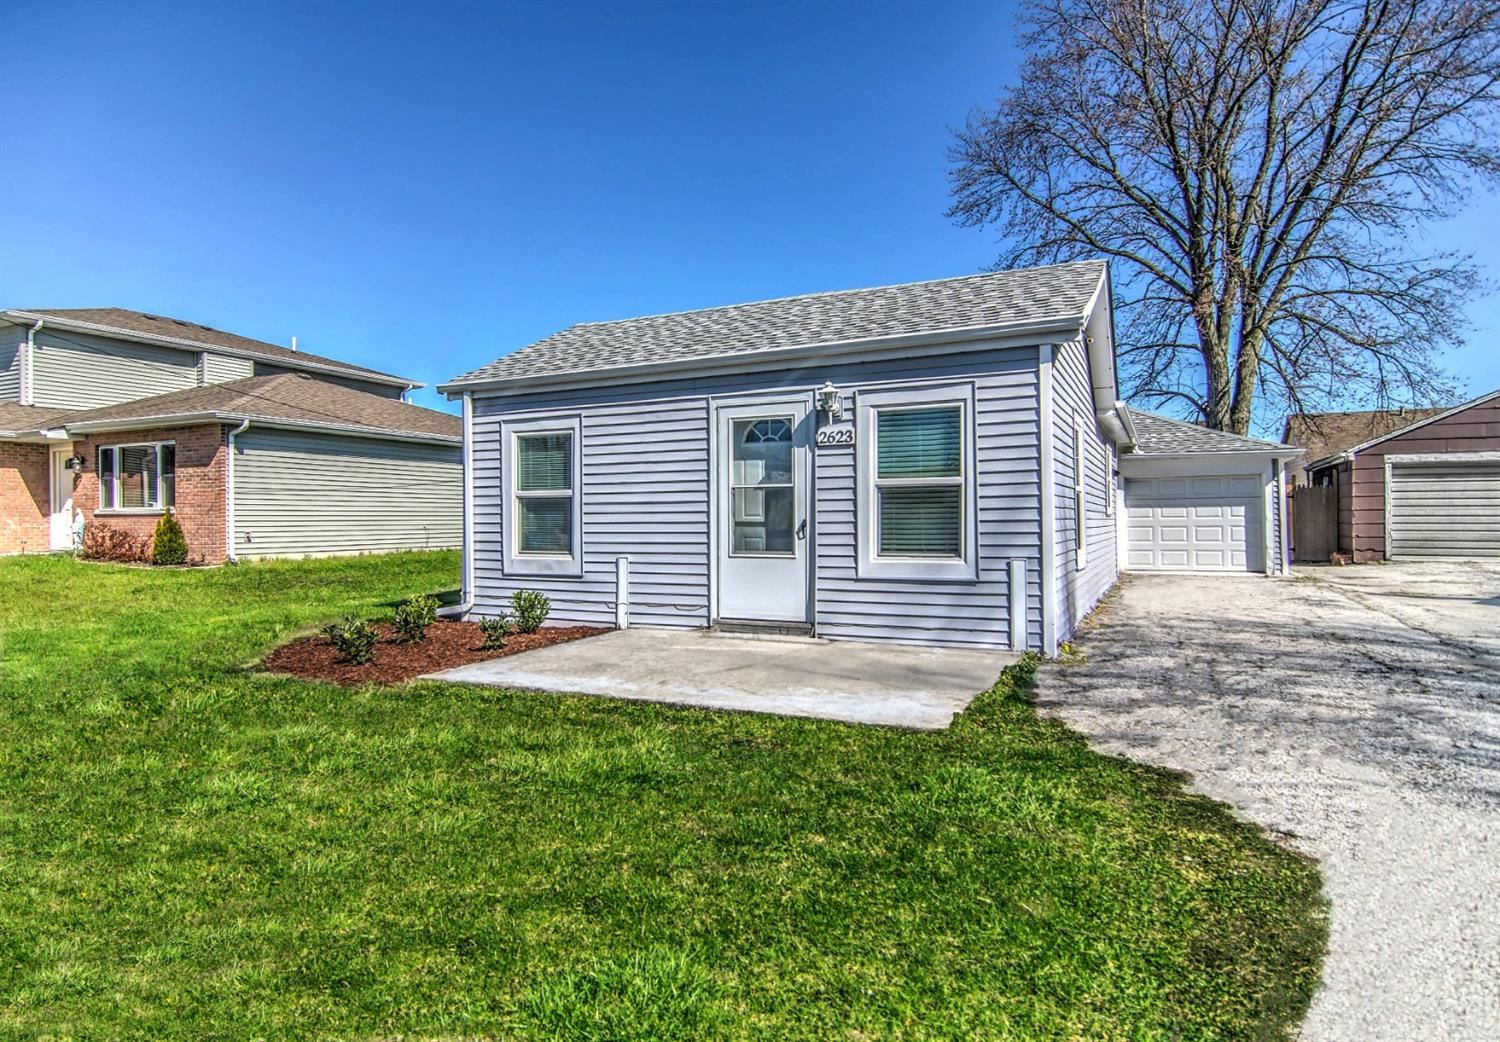 2623 Hart Road, Highland, IN 46322 - #: 471114